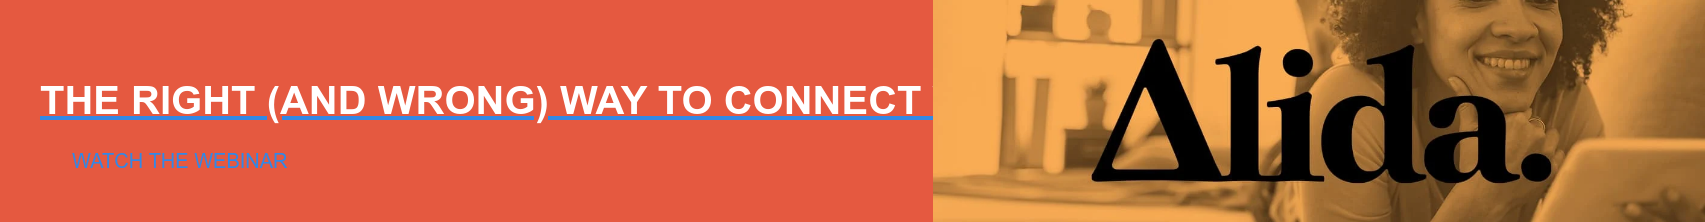 The Right (and Wrong) Way to Connect with Customers During COVID-19 Watch the Webinar